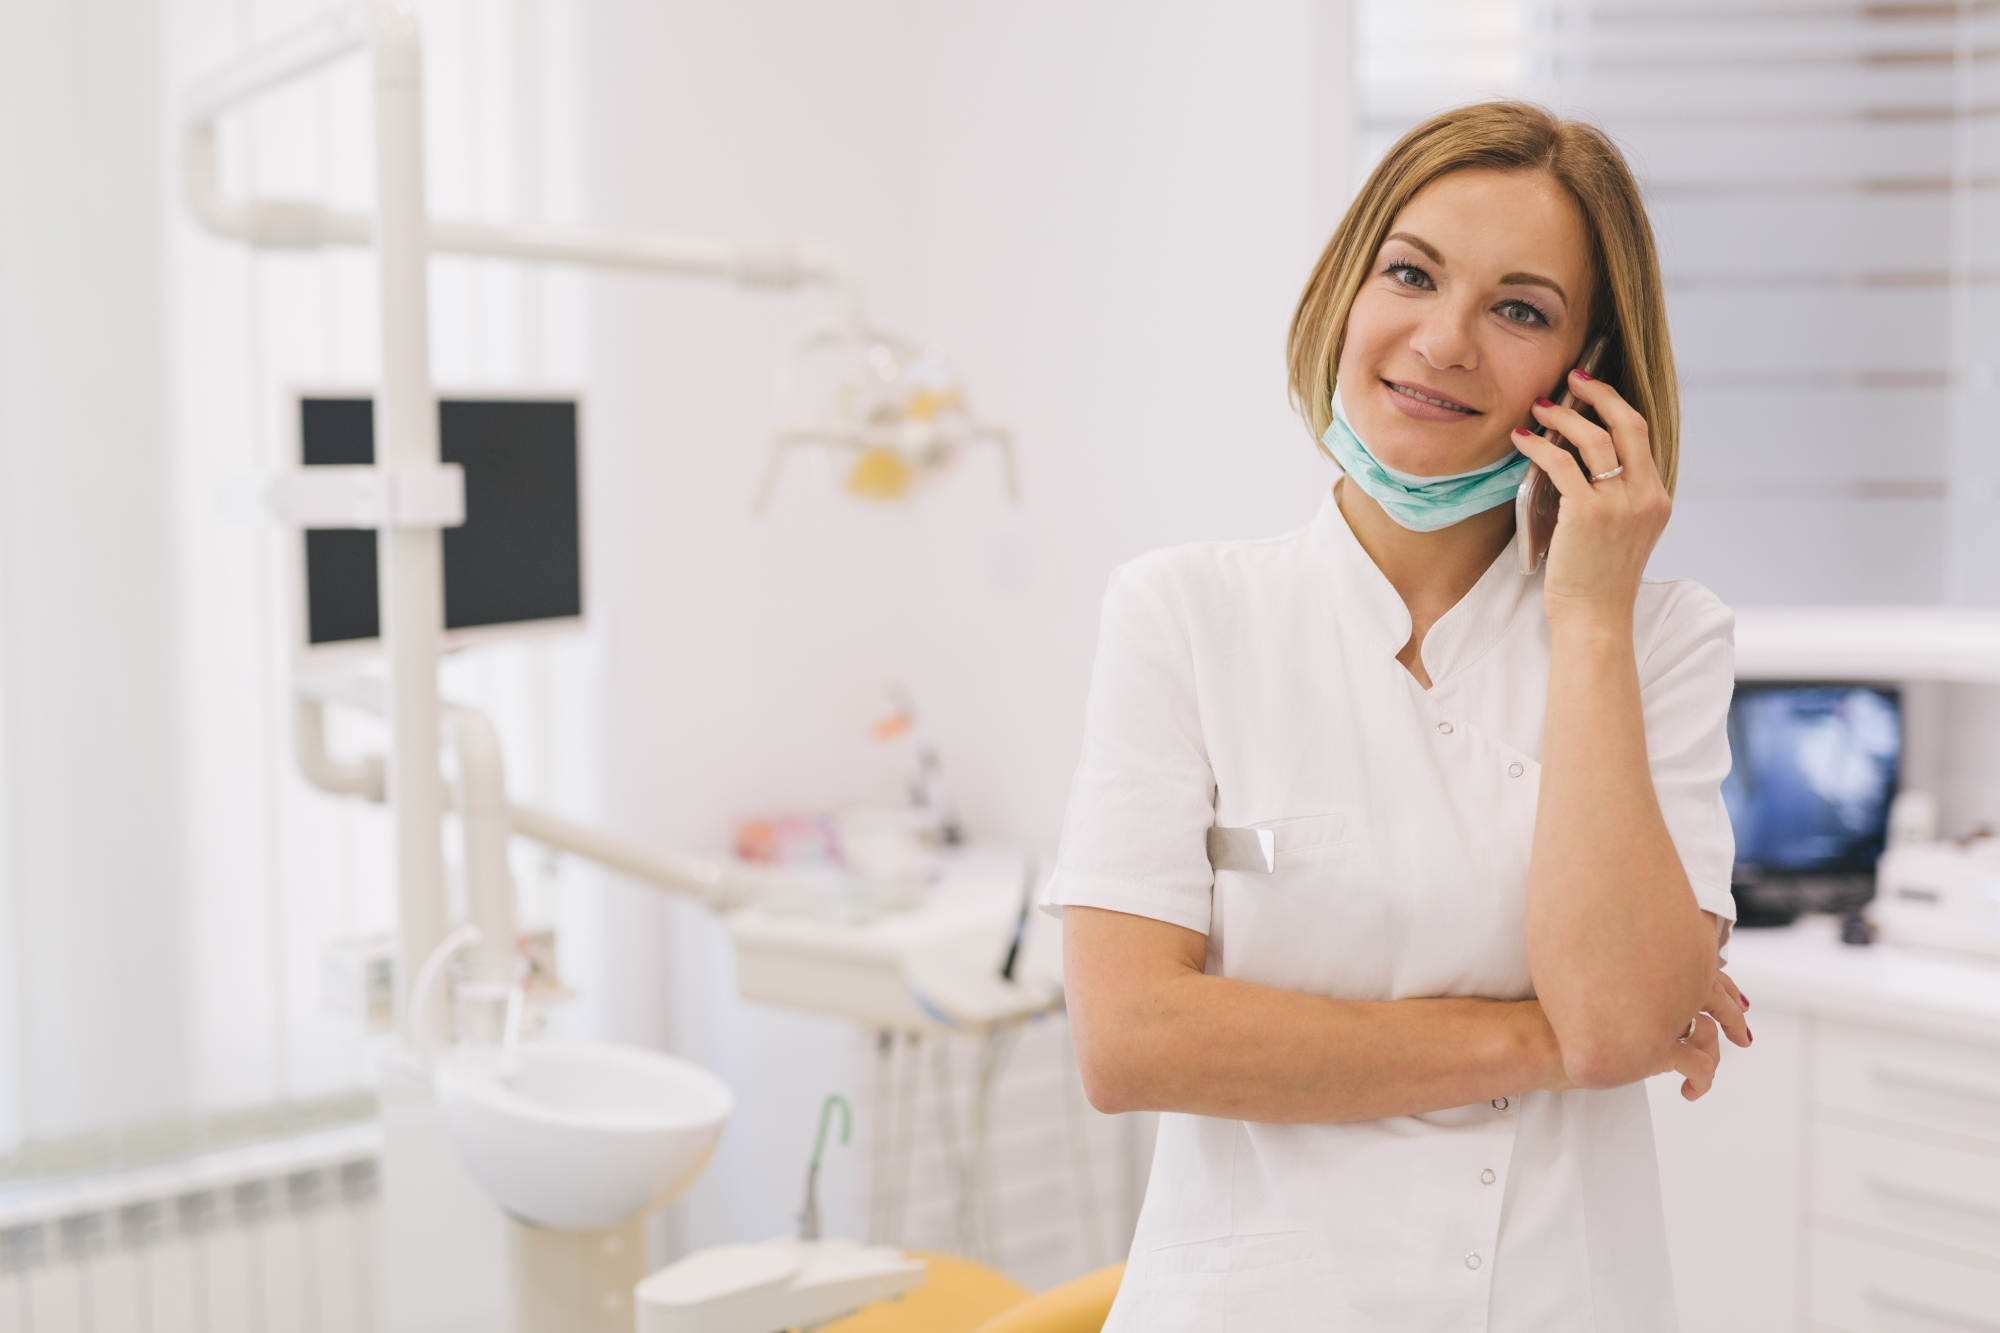 Call analytics for dentists